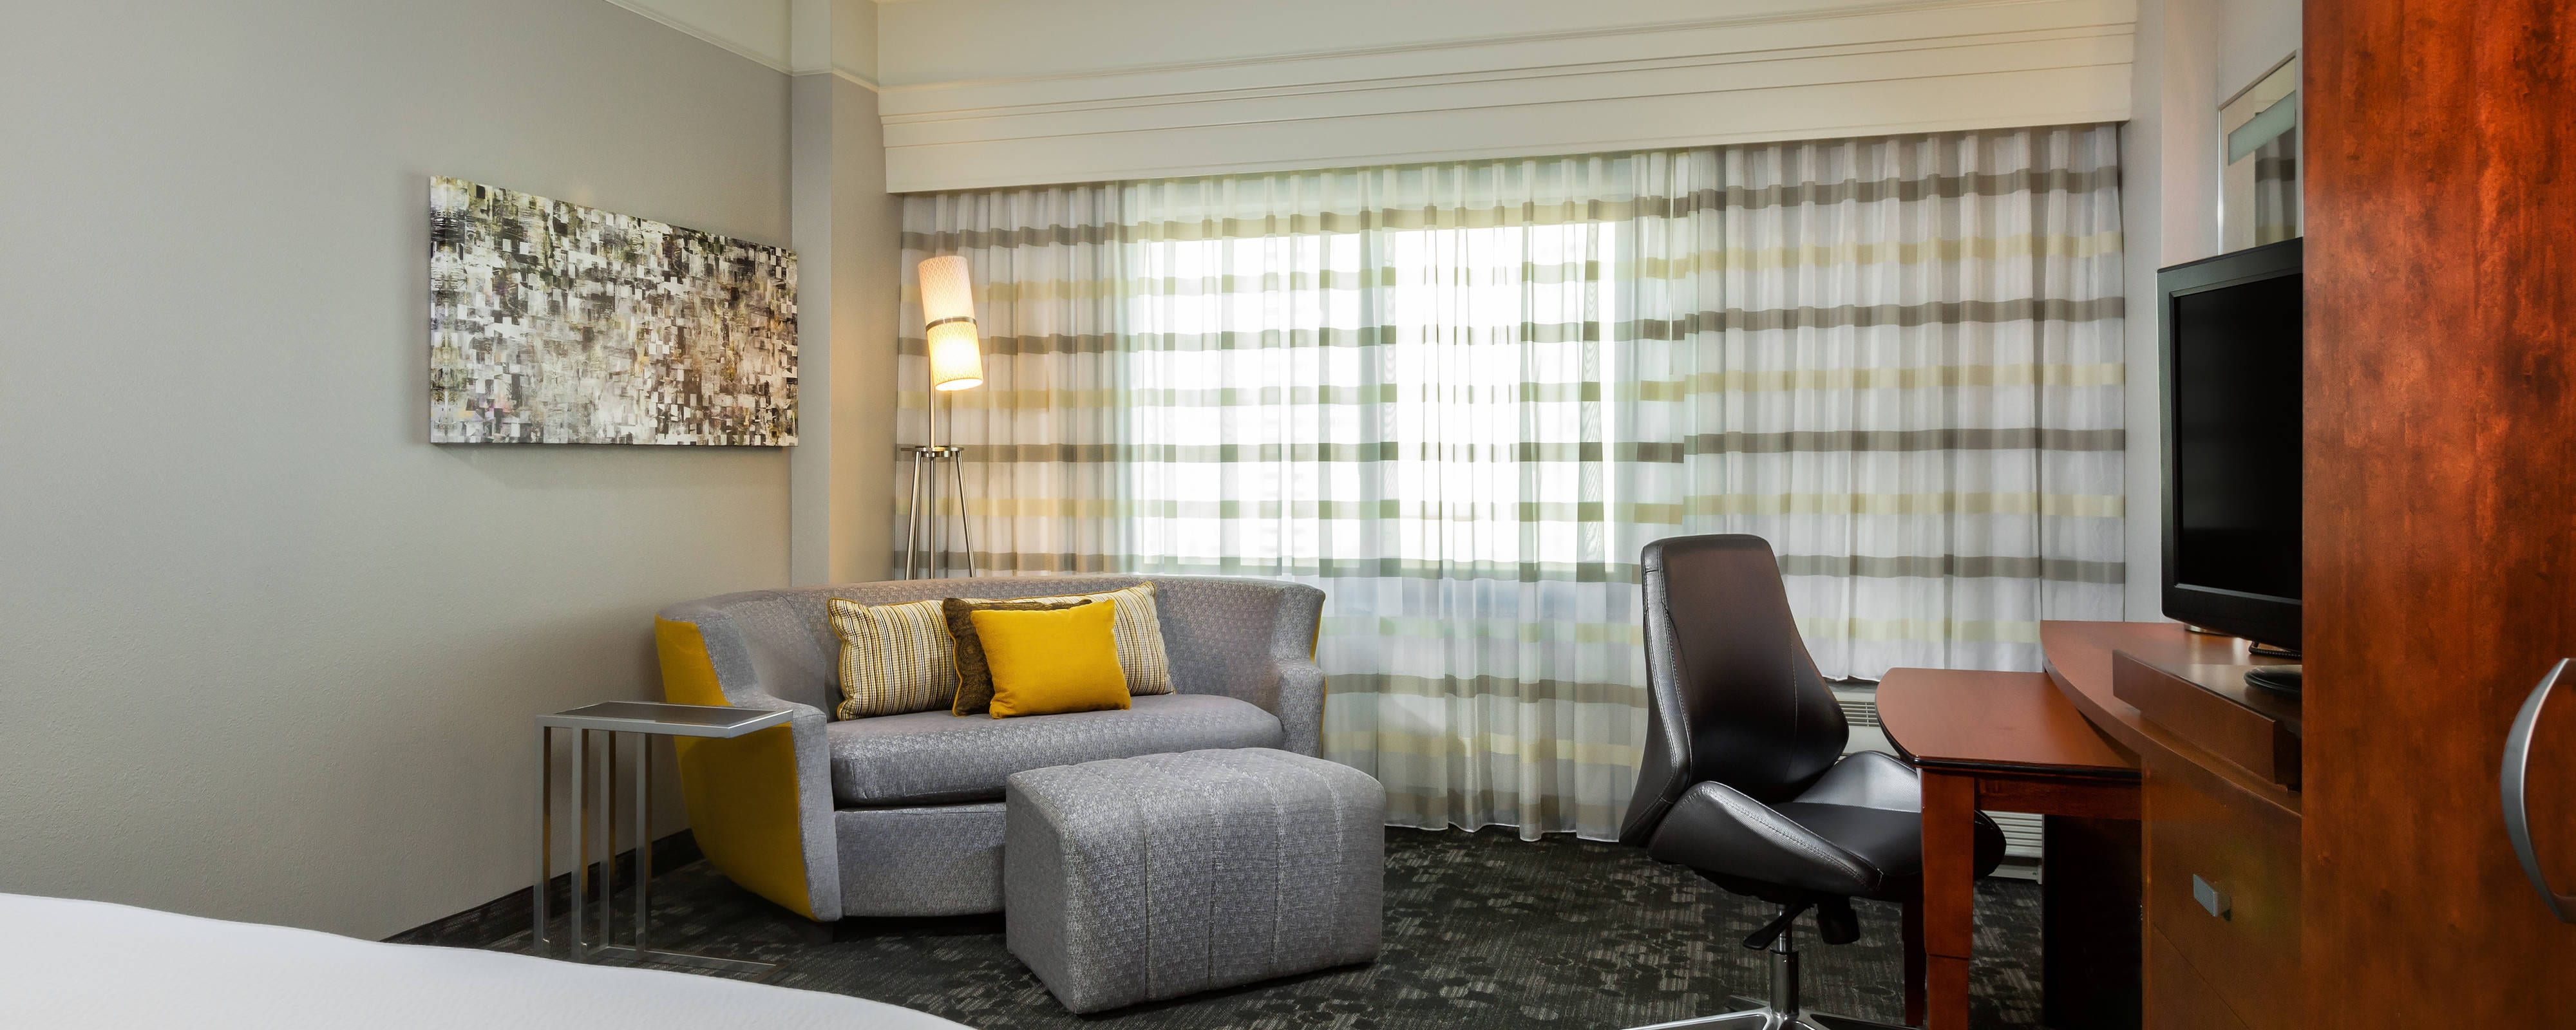 Zimmer des Hotels in Houston Galleria